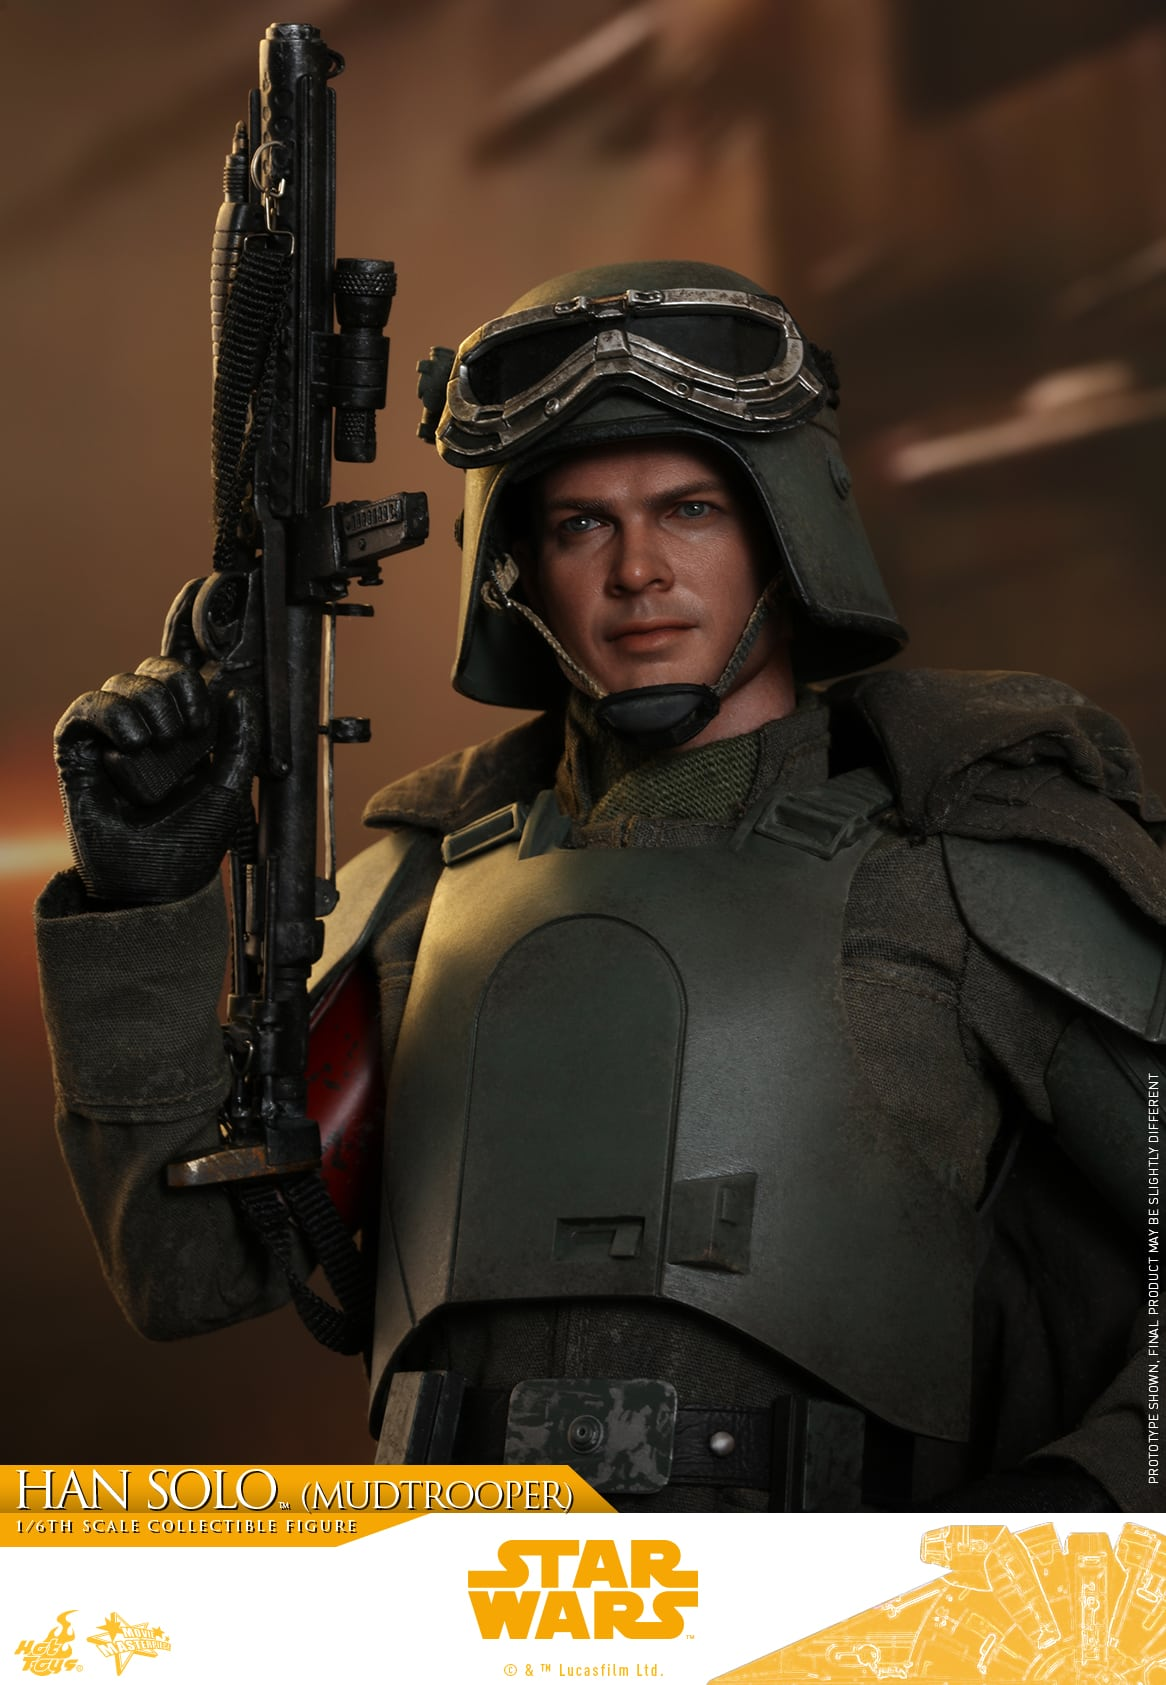 Hot-Toys-Solo-Han-Solo-Mudtrooper-collectible-figure-6.jpg